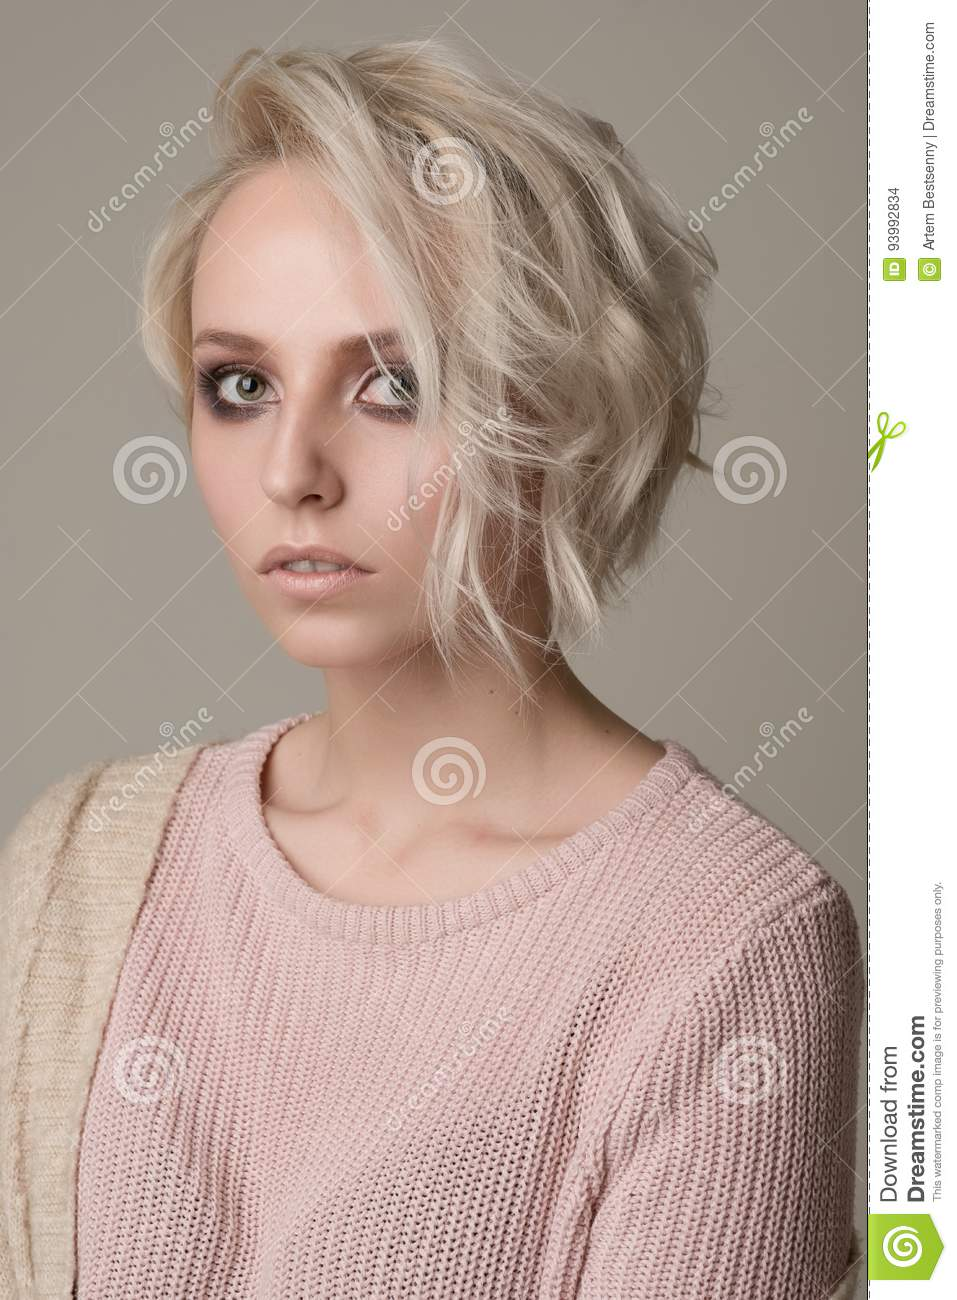 Portrait Of Girl Of Blonde With Dark Eye Makeup And Short Hair